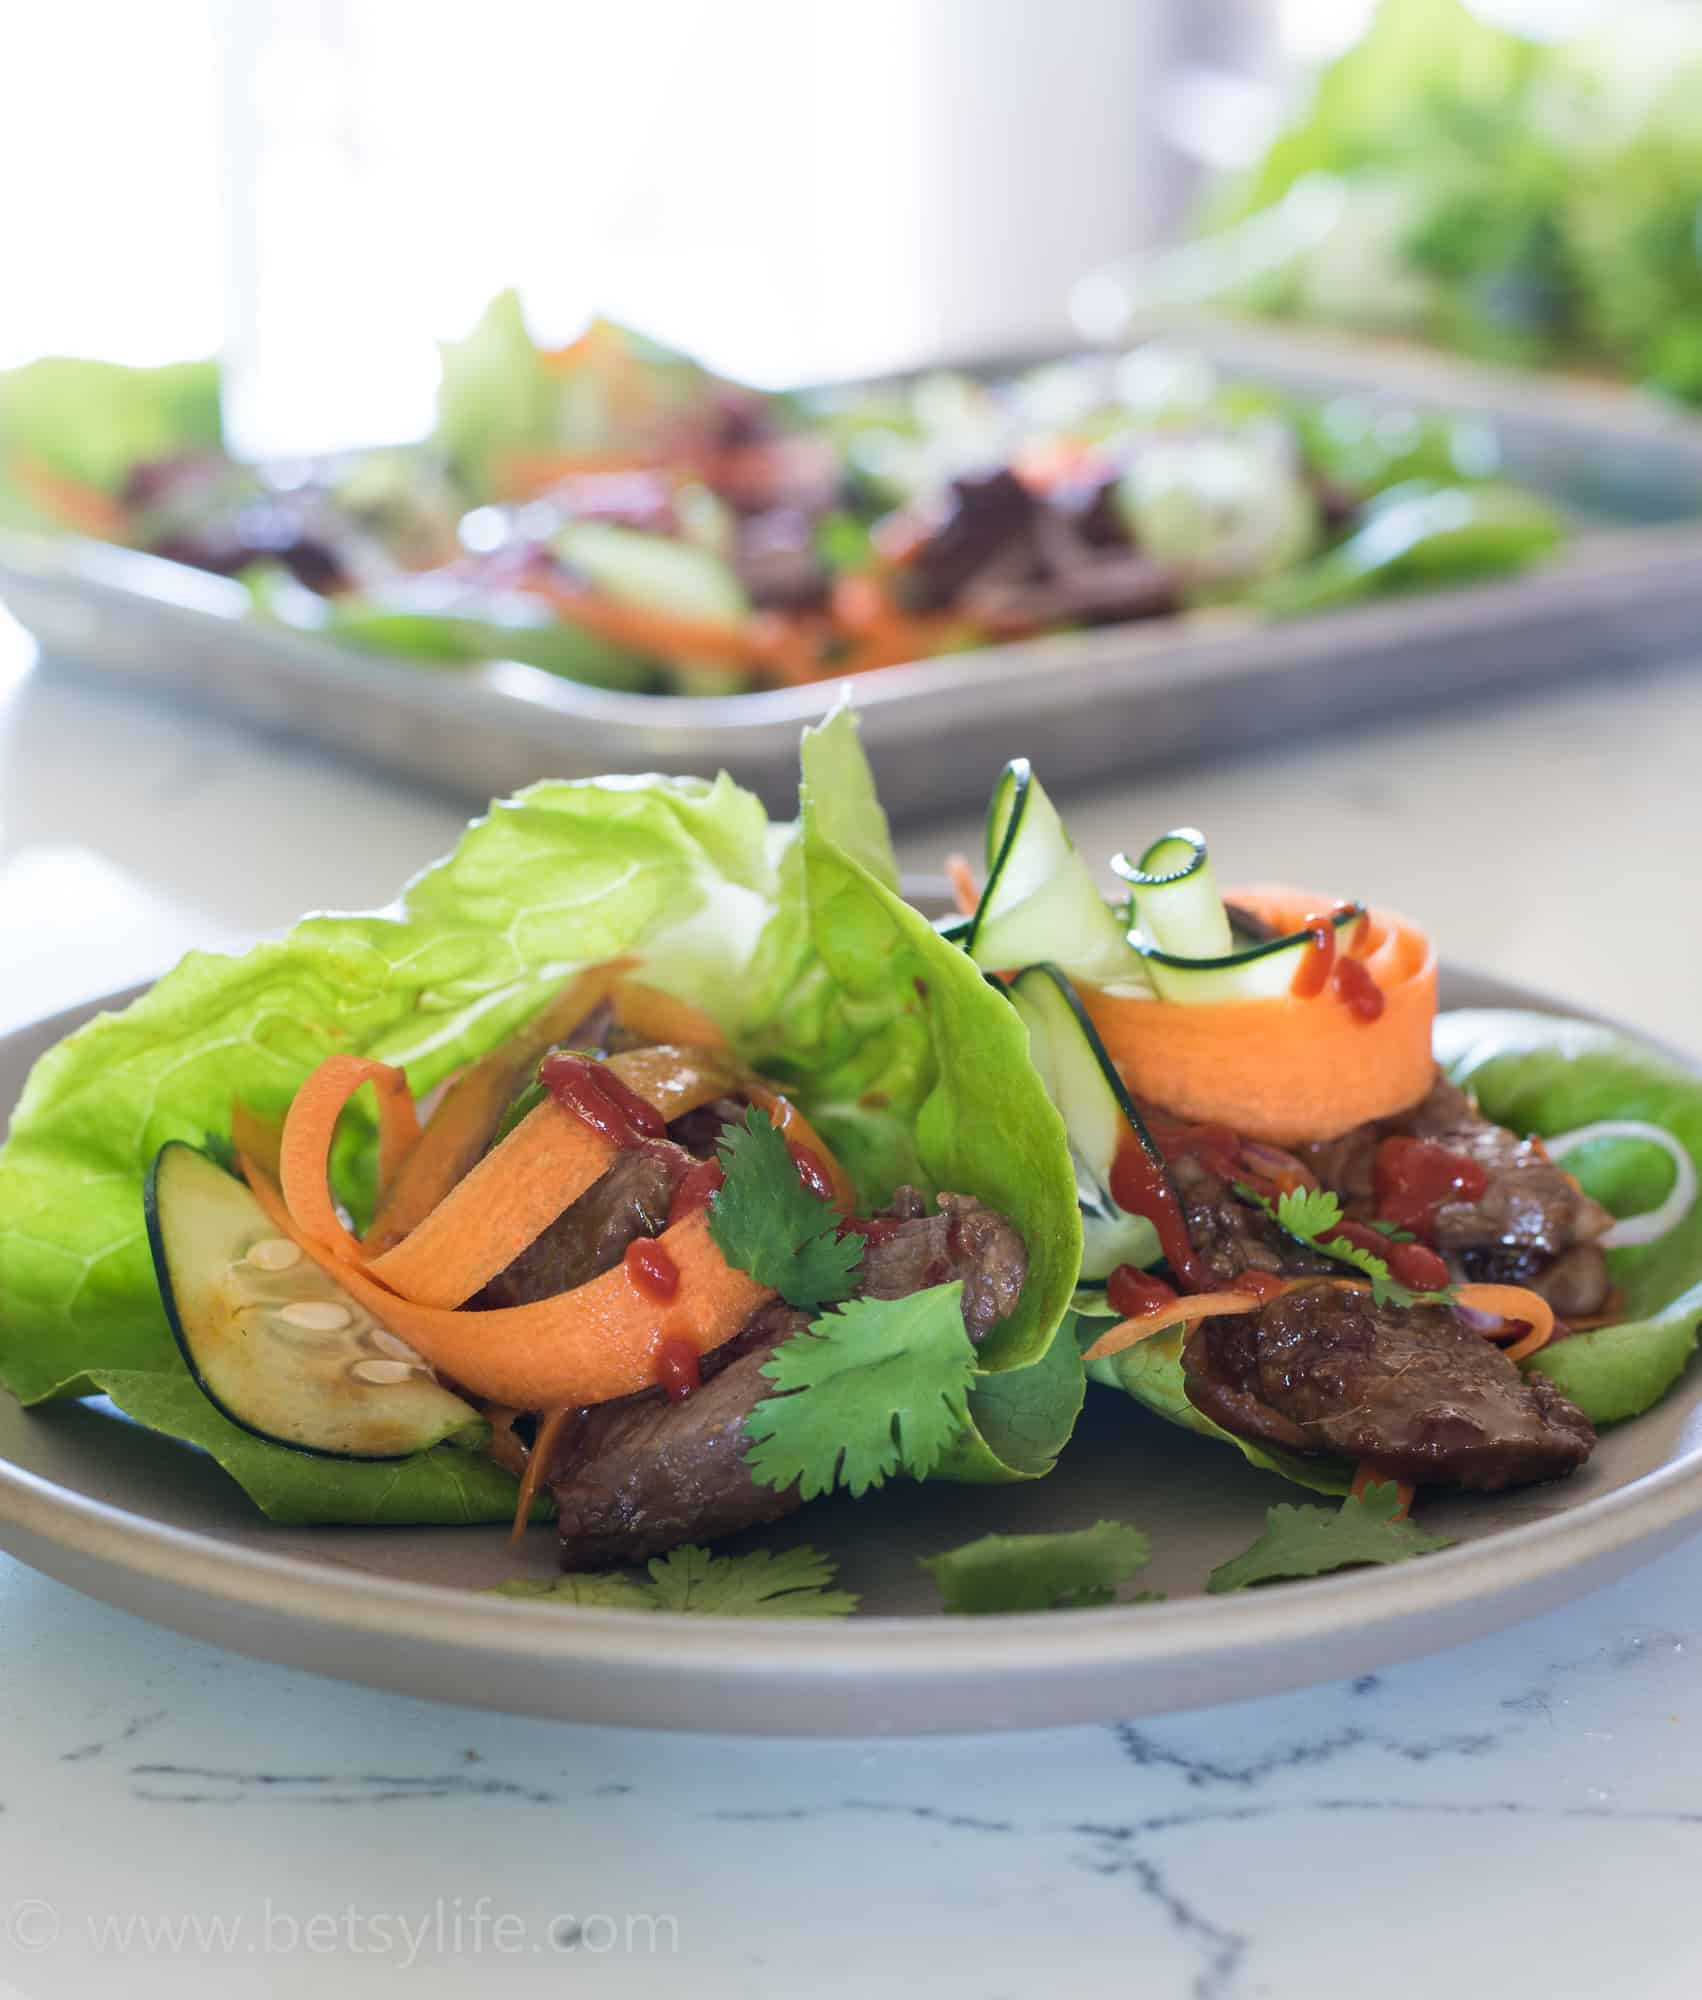 Two healthy lettuce wraps piled high with marinade strips of steak, thinly sliced carrots, cucumbers and red onions, cilantro leaves and Sriracha drizzle